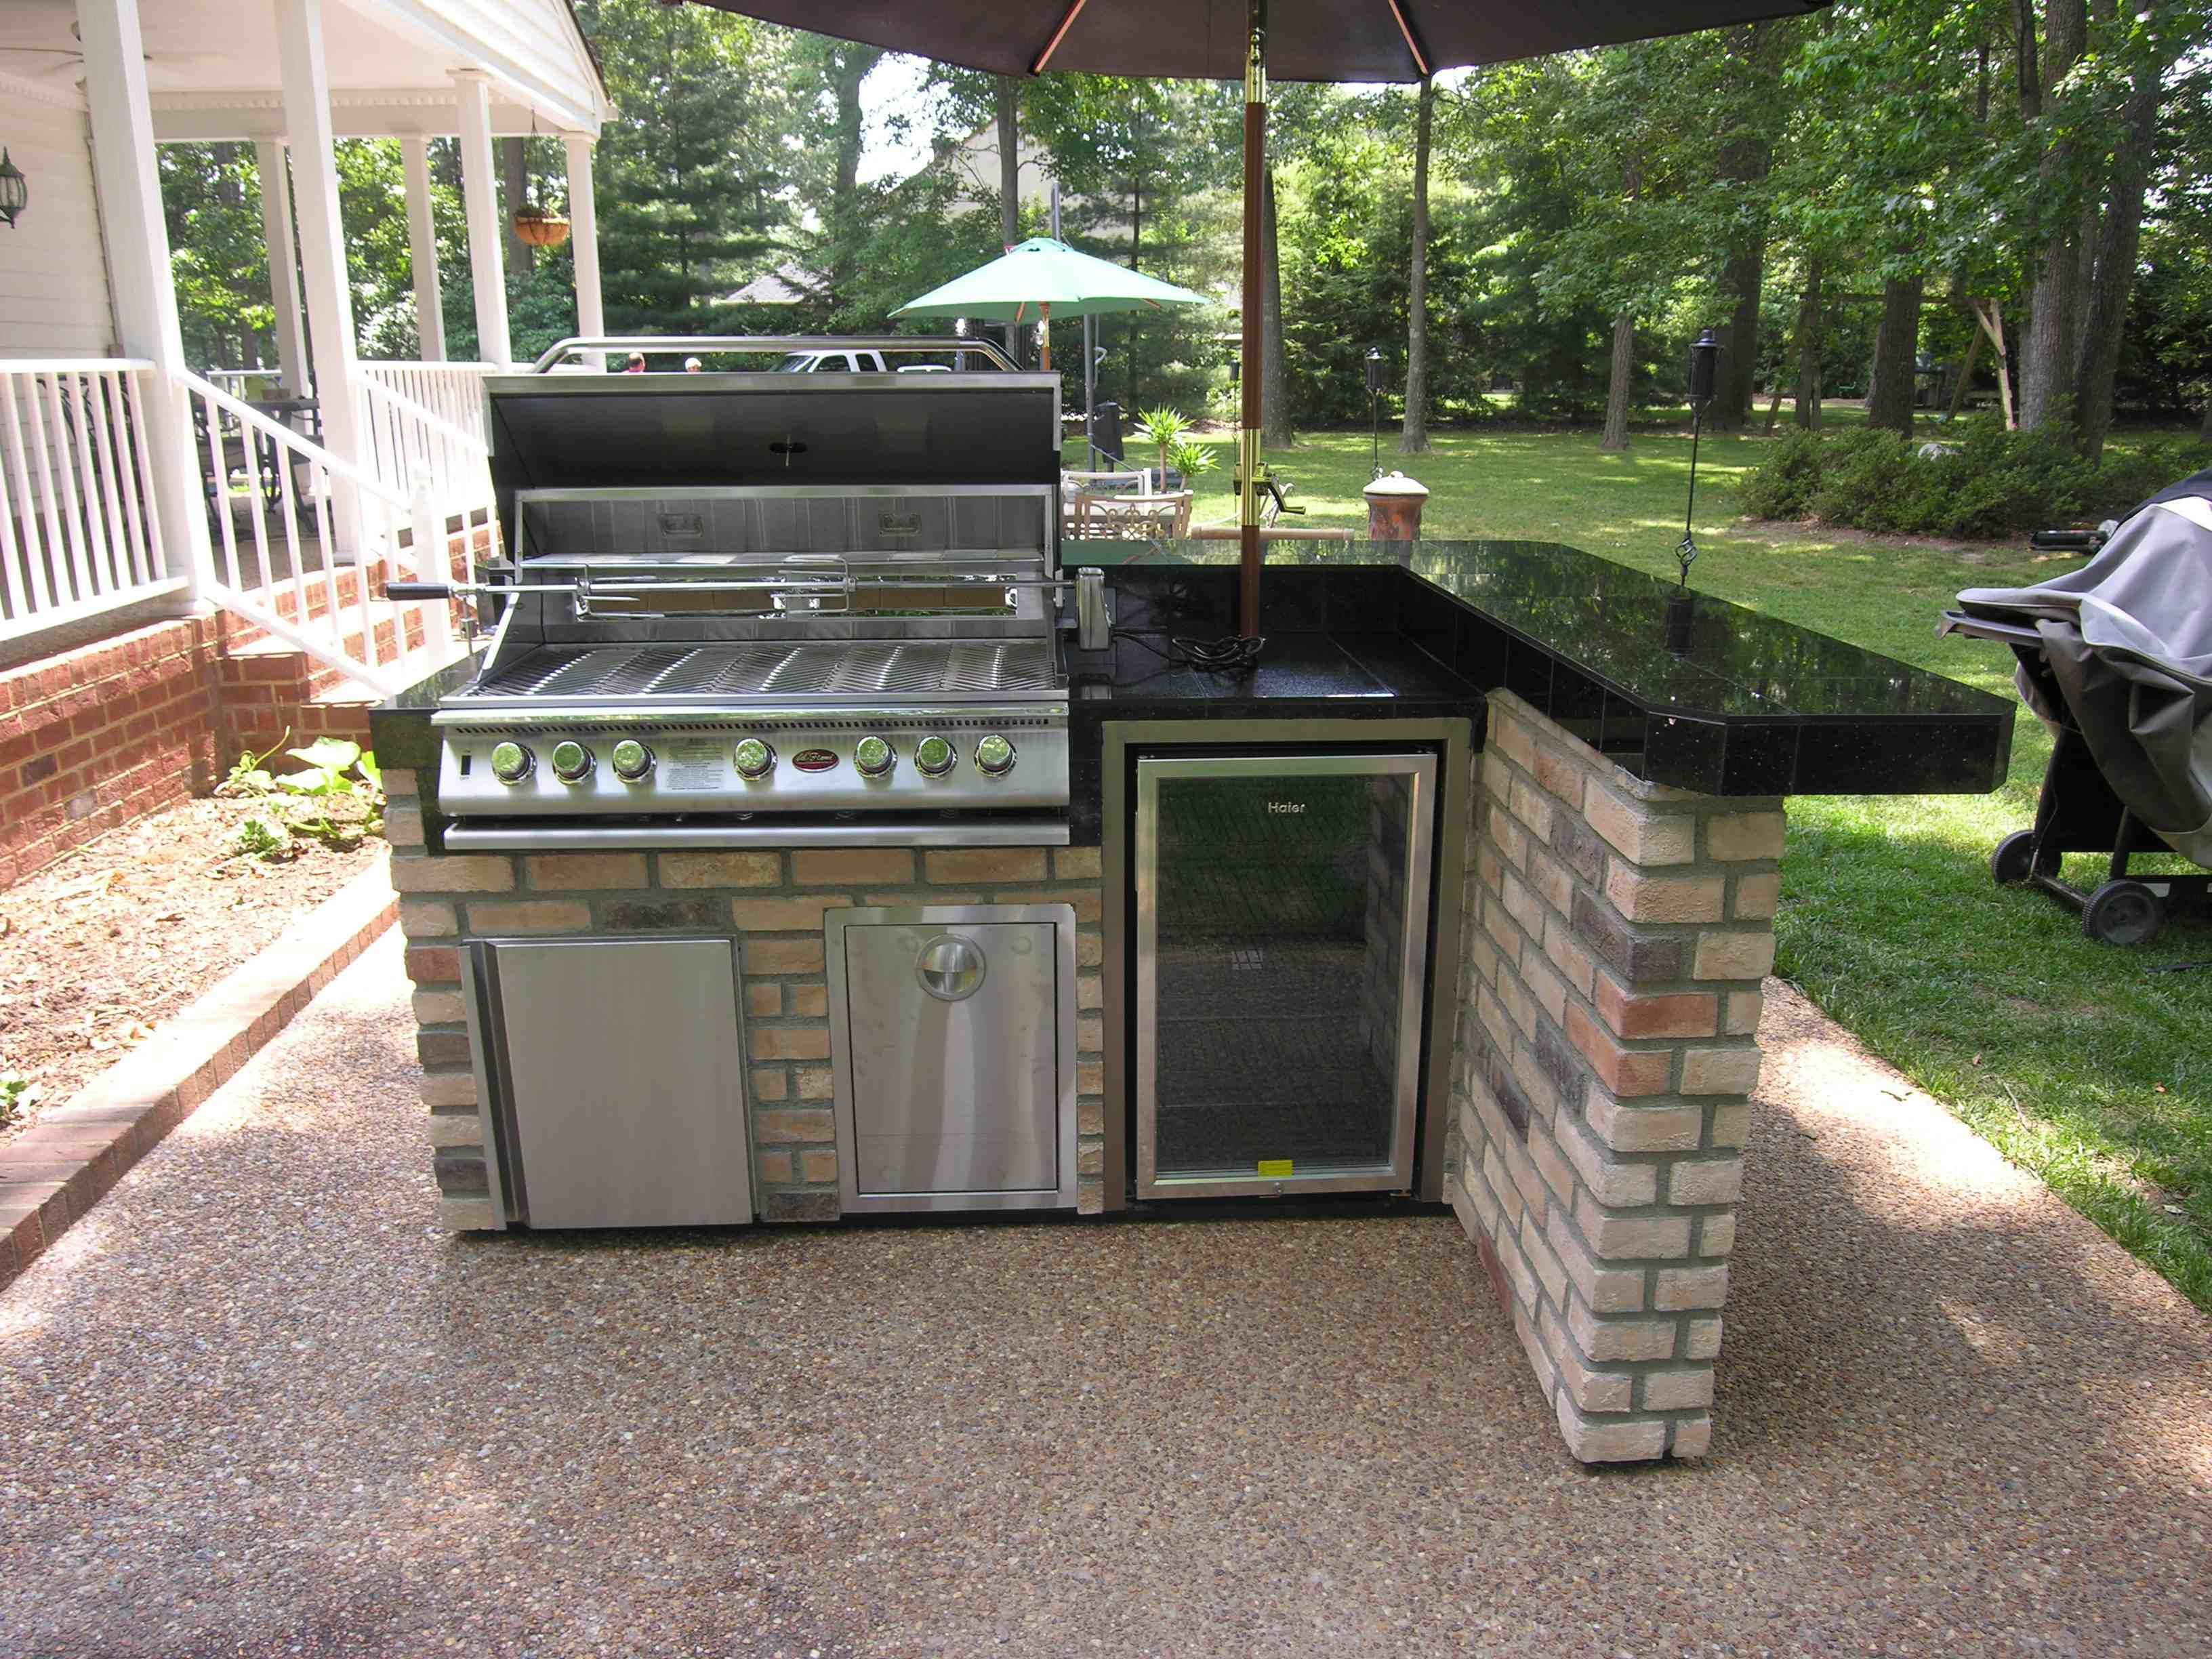 outdoor kitchens kits kitchen design maker prefab 2017 with modular bbq islands pictures costco island frames gas grills at home depot lowes